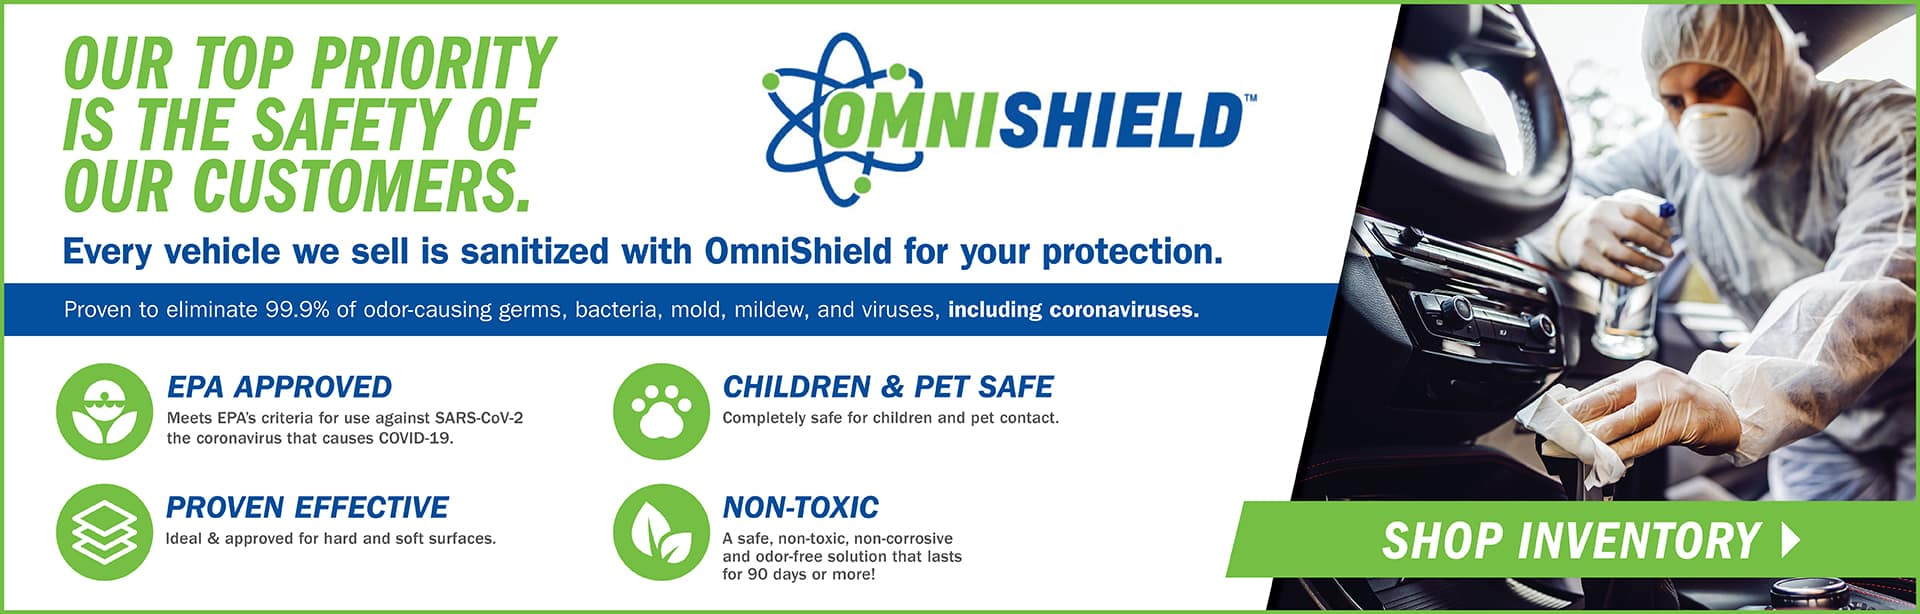 OmniShield